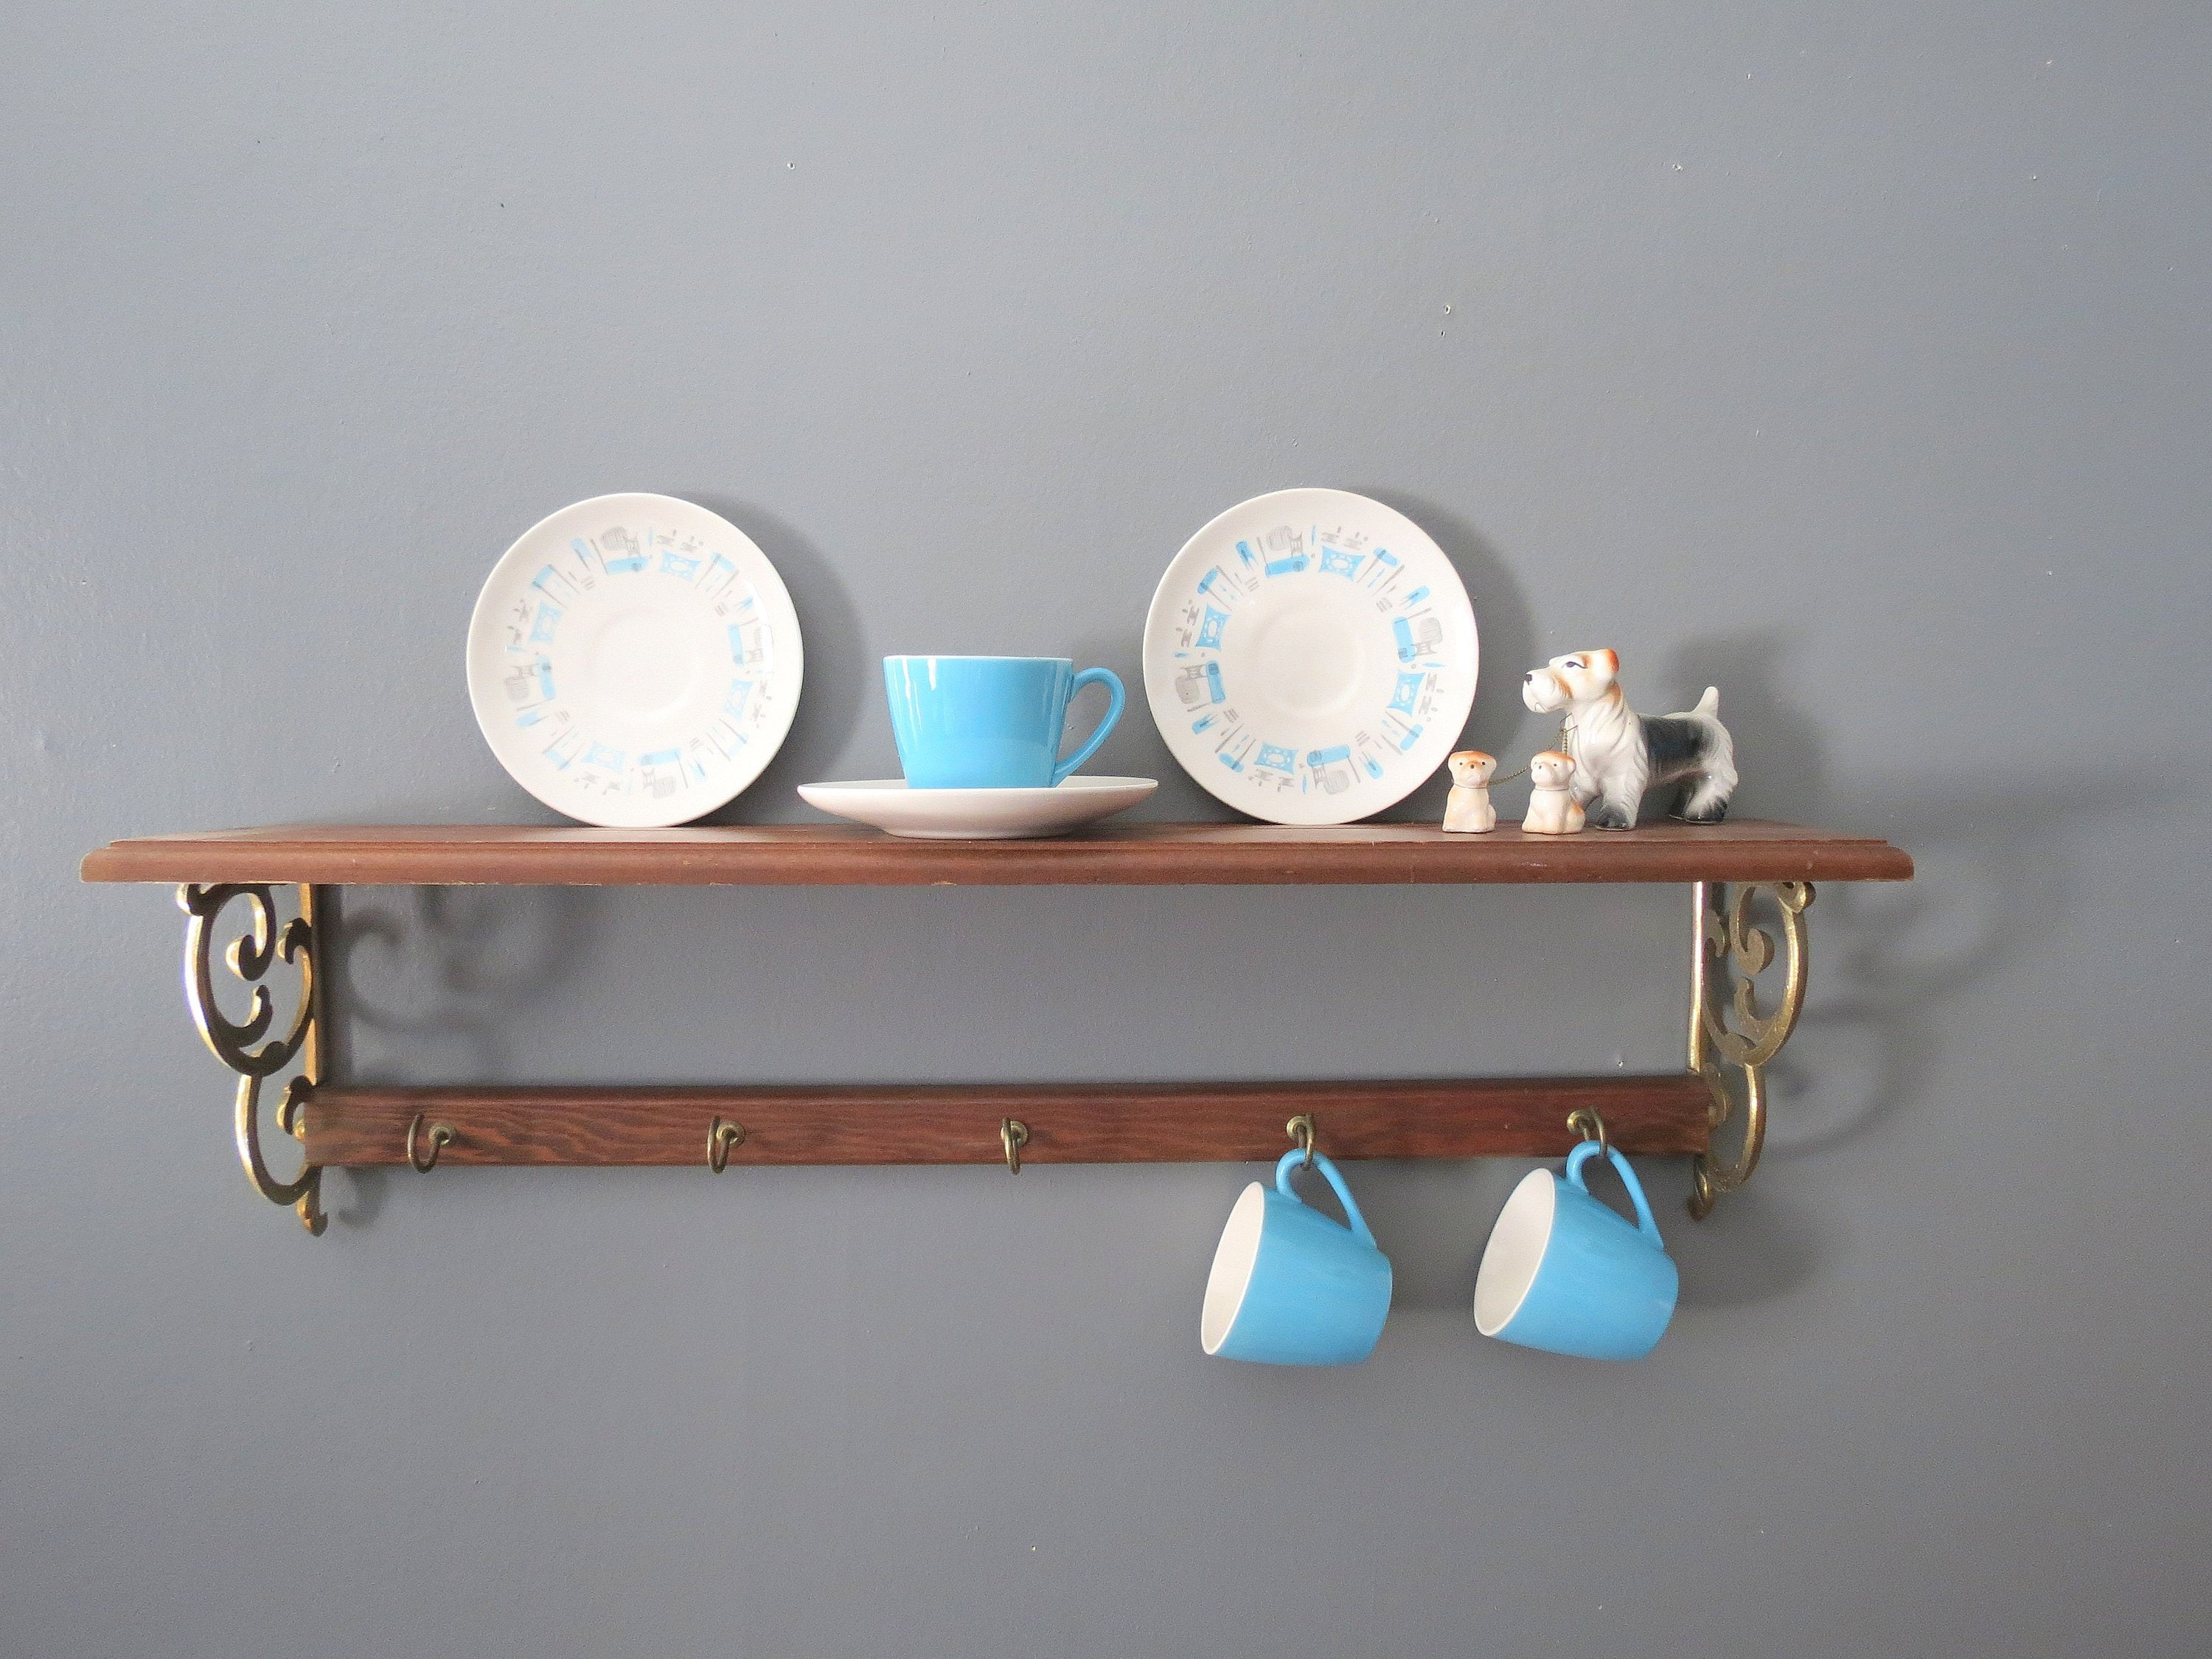 Vintage Farmhouse Style Round Plate Display Dish Rack Home Furniture Diy Kitchen Racks Holders Redhot Cl